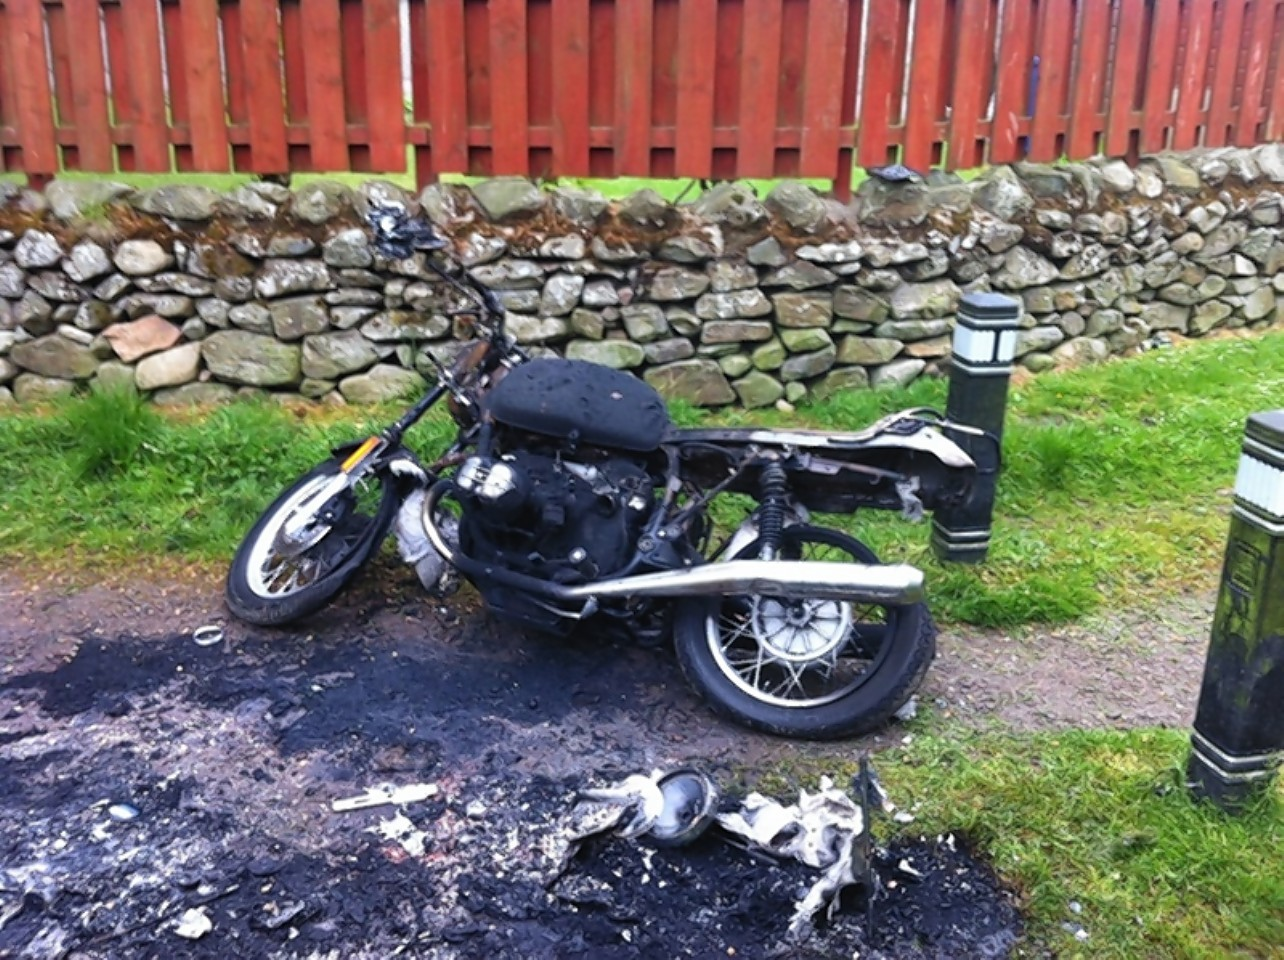 The motorbikes were left burned out on the path